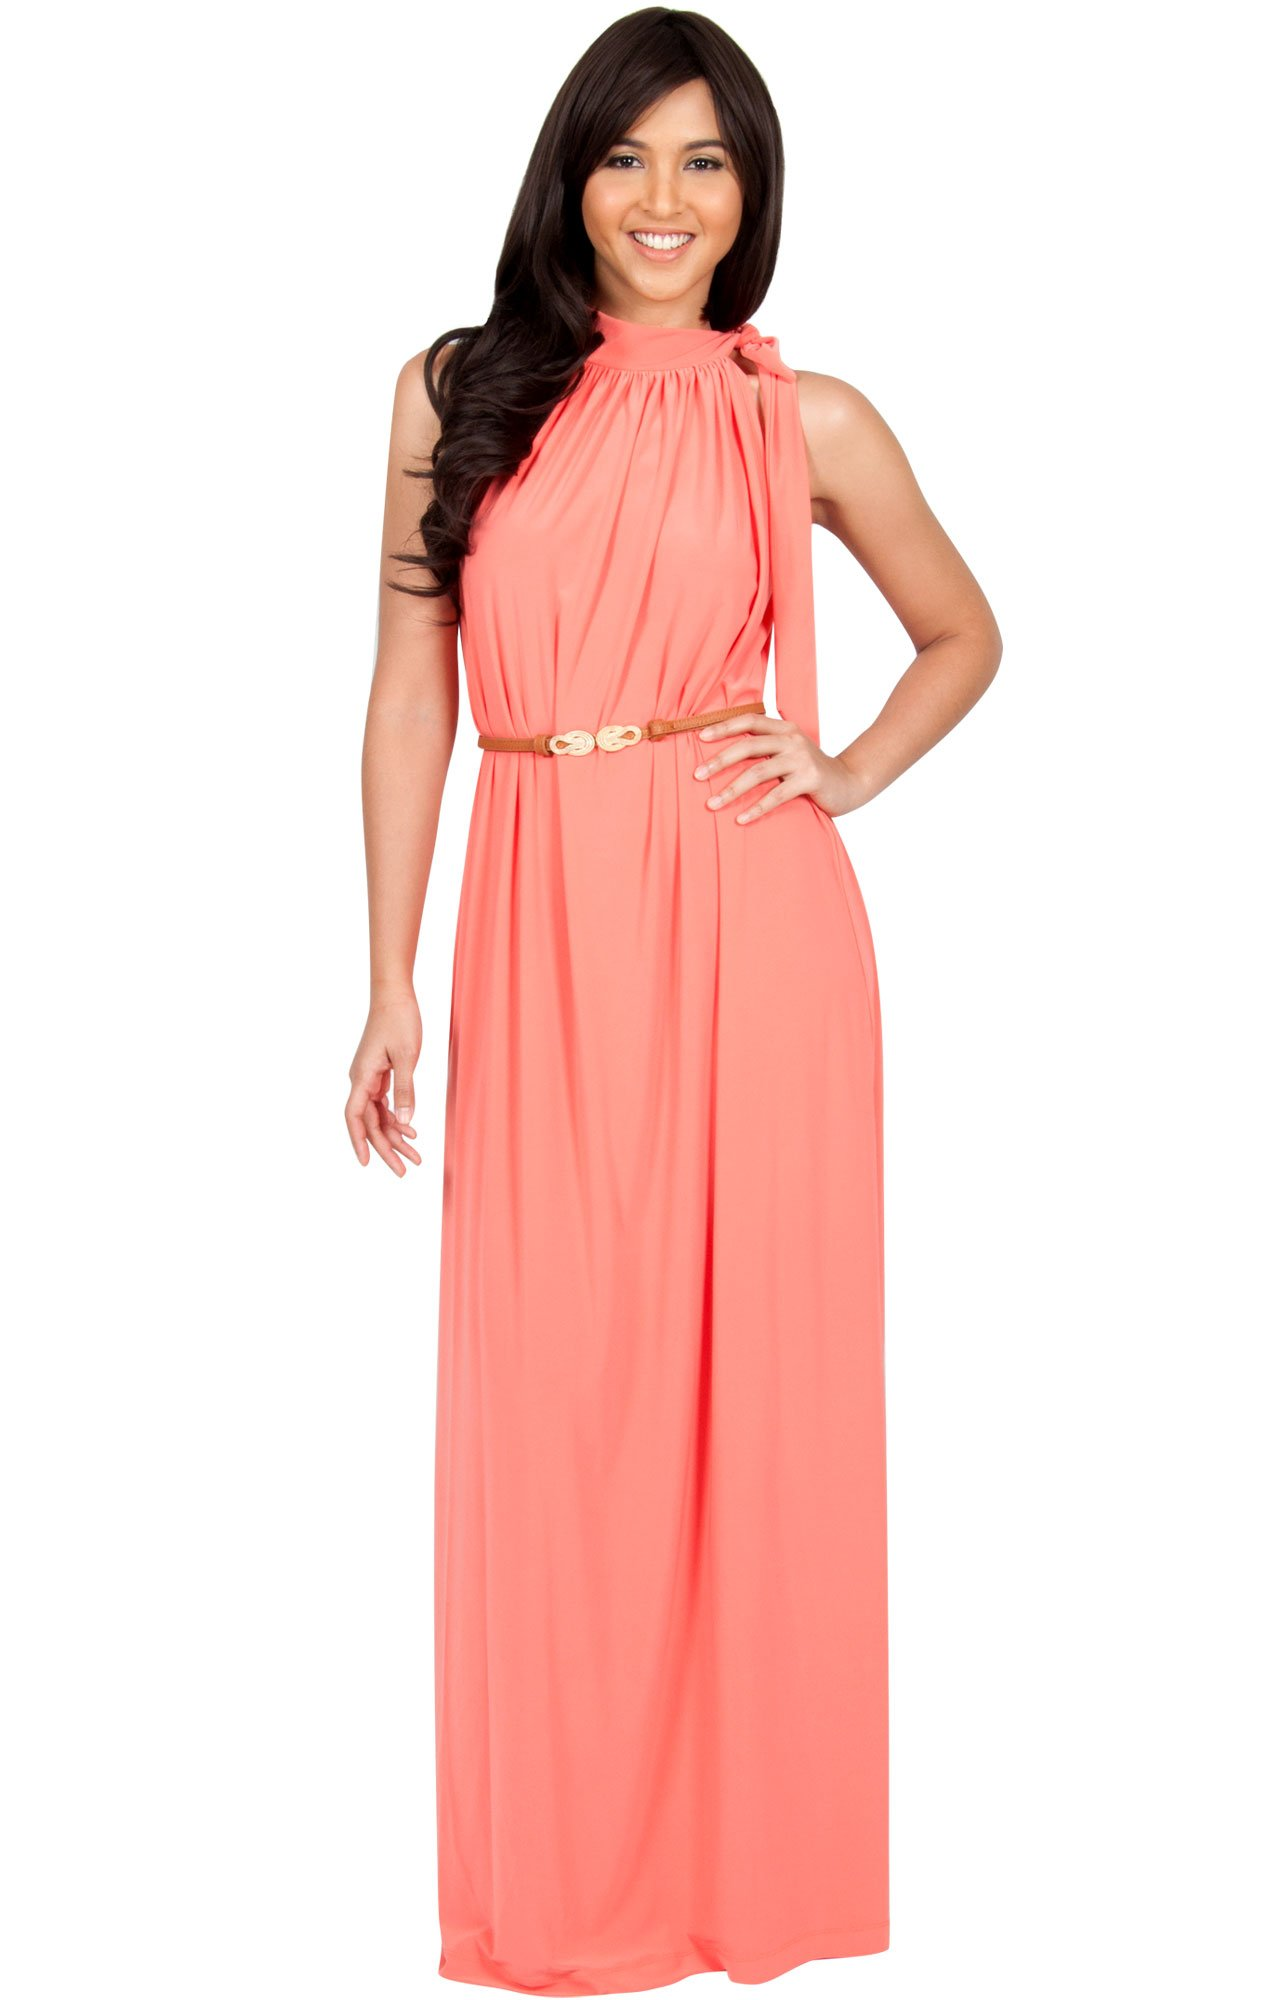 KOH KOH Petite Womens Long Halter Sleeveless Sexy Summer Belted Evening Maxi Dress, Coral/Pink Peach S 4-6